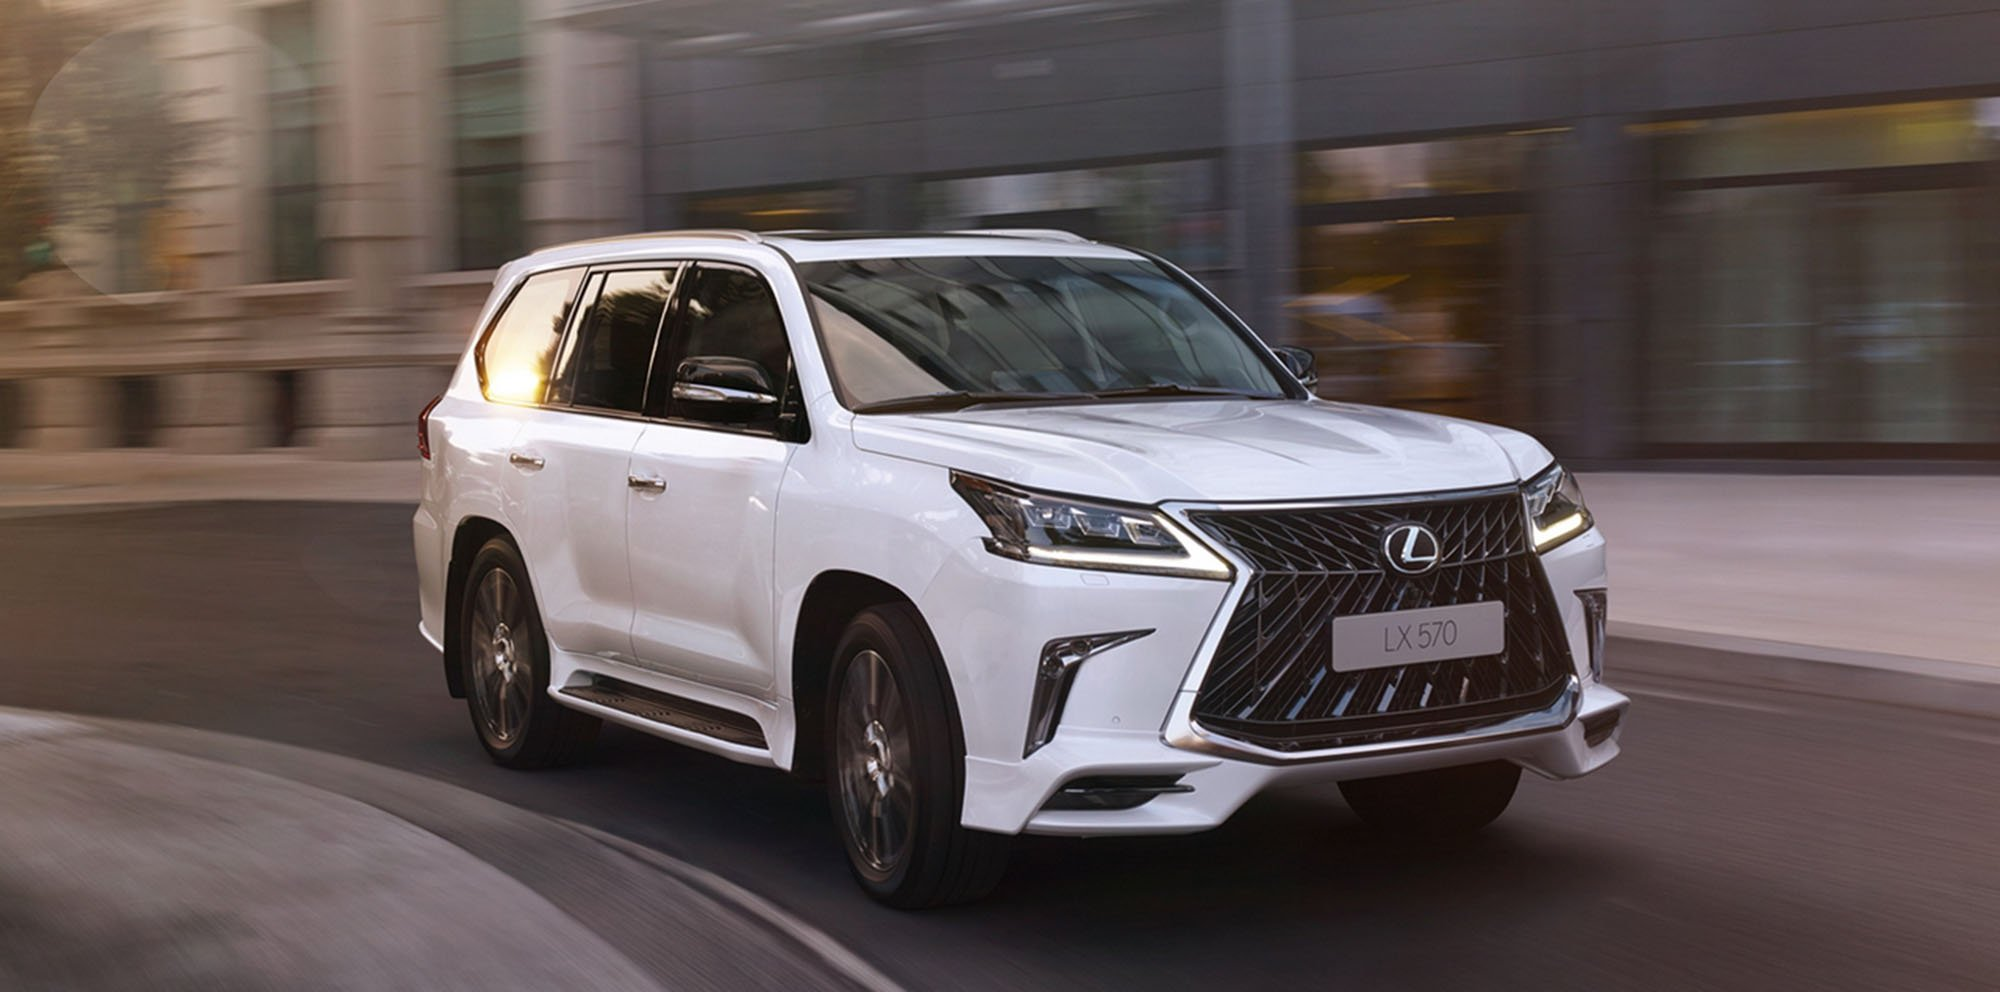 2018 Lexus Lx Superior More Aggressive Model Revealed In